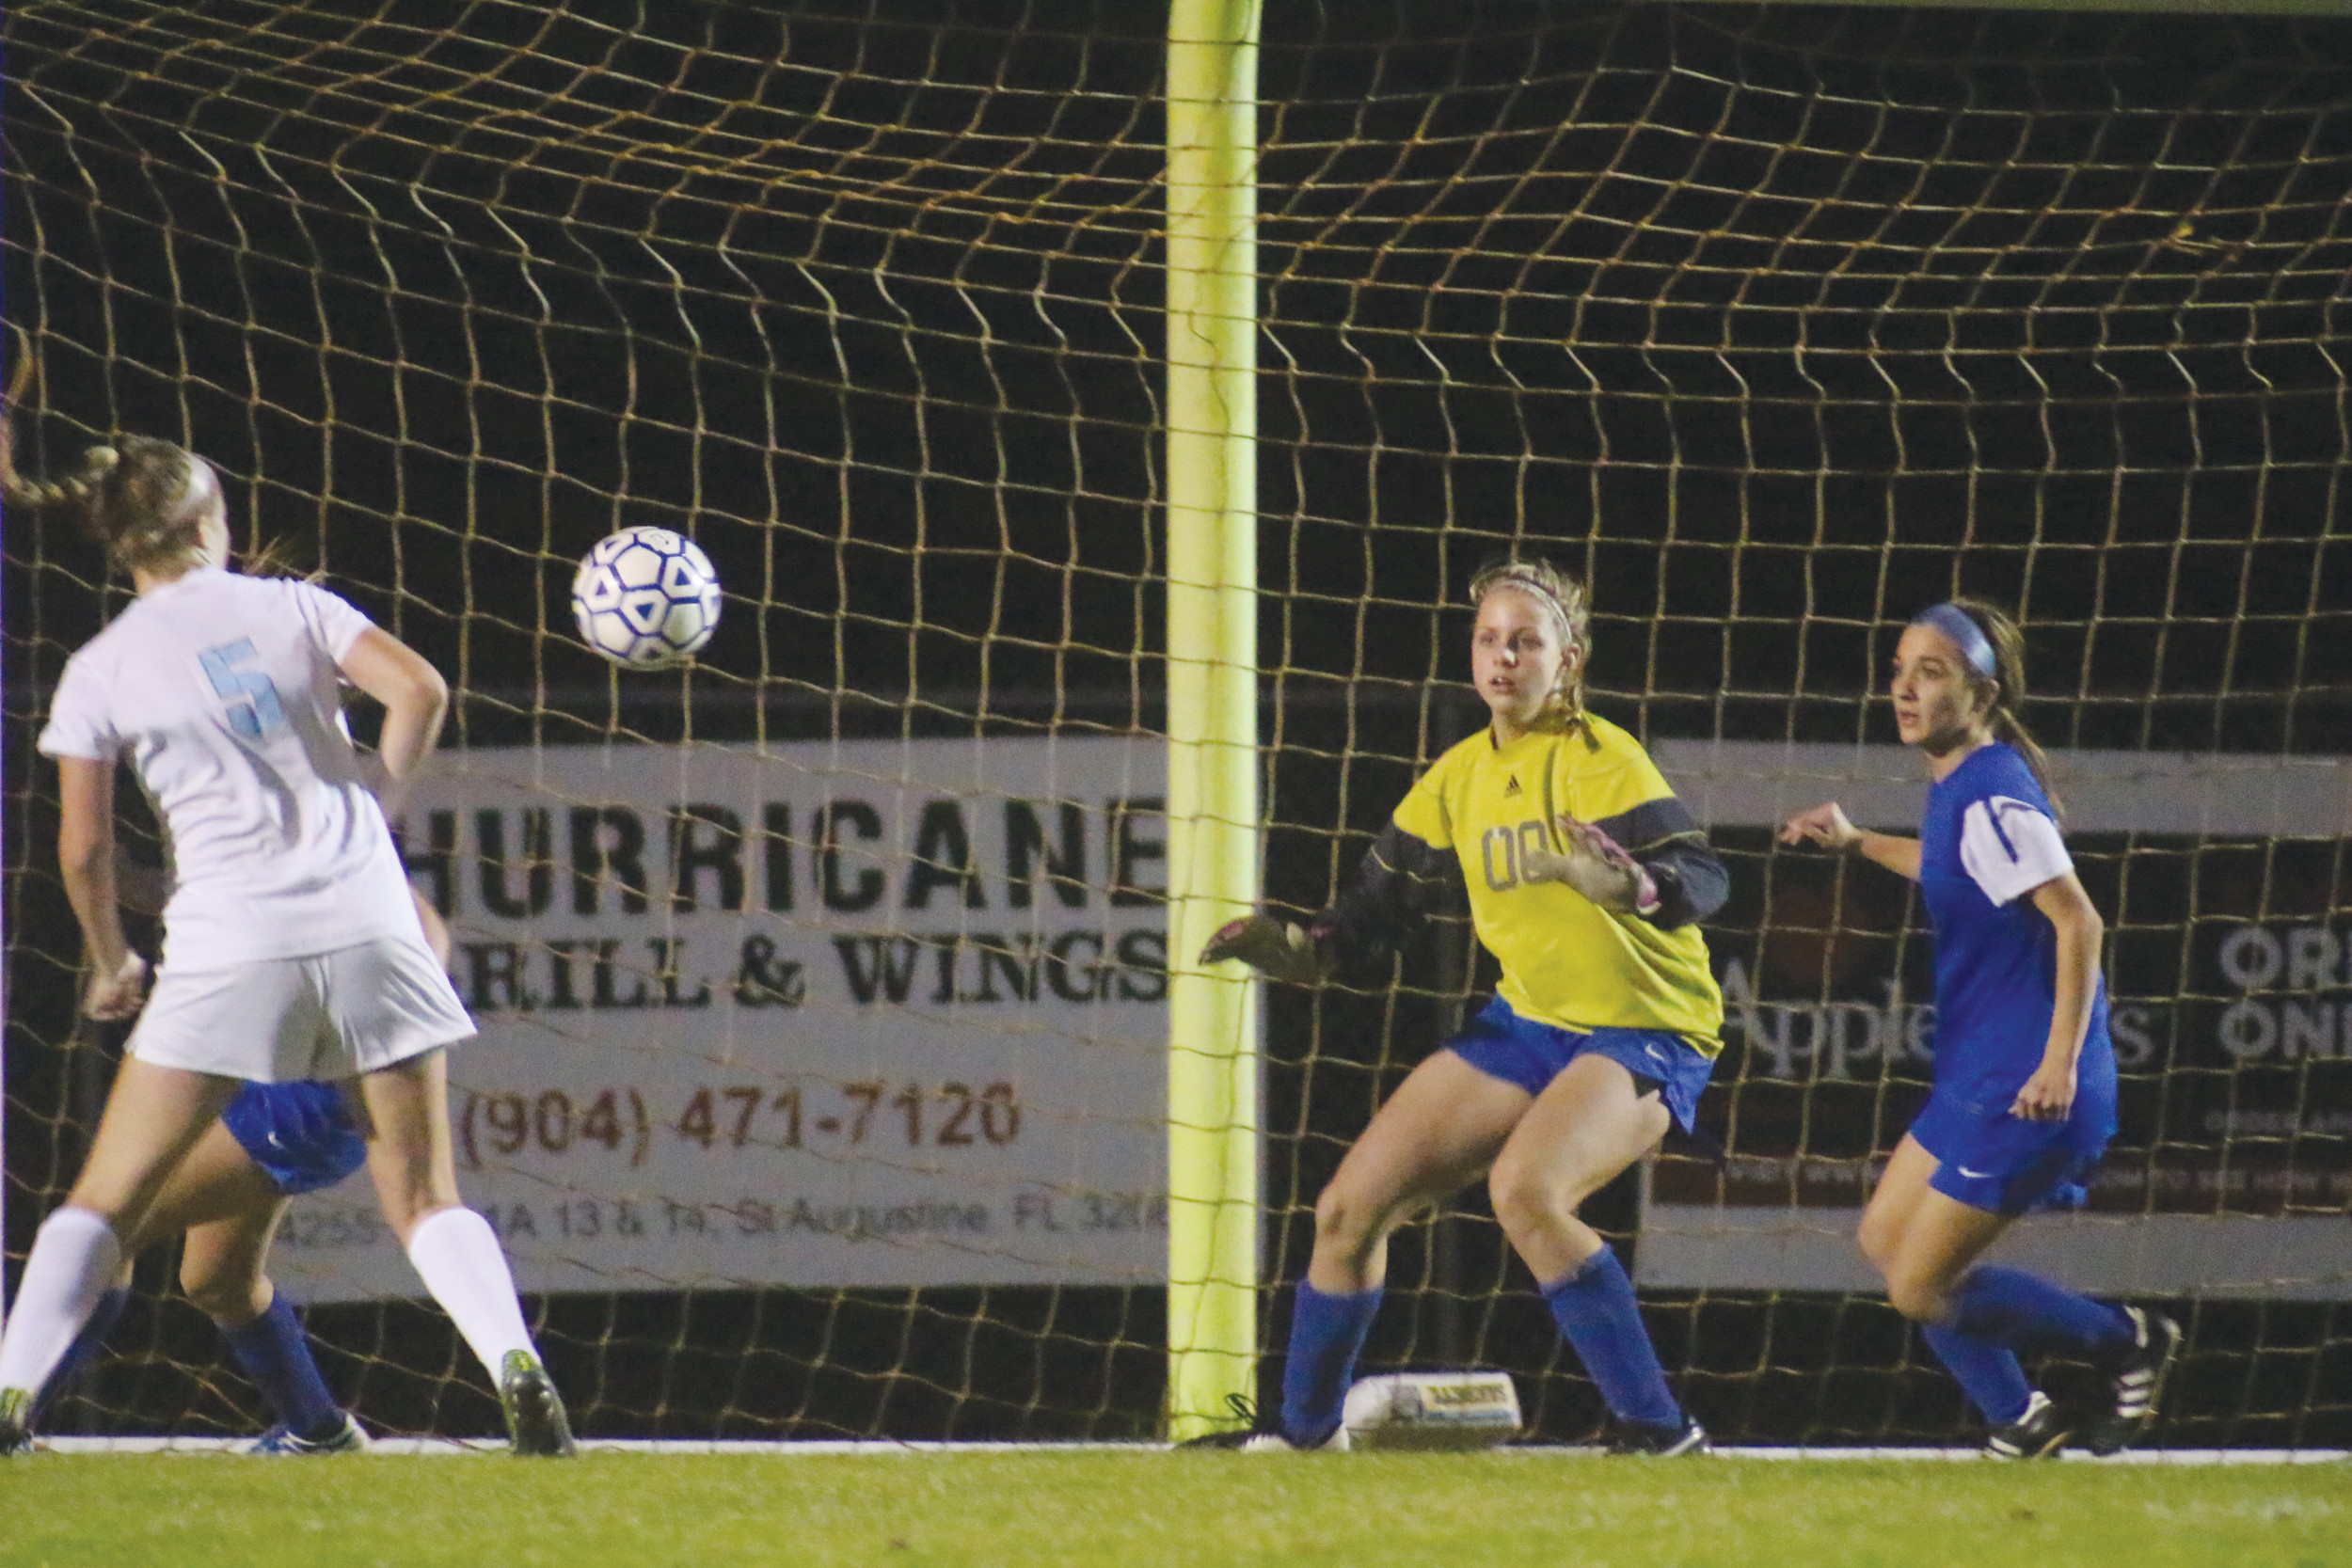 Clay high goalie Taylor Hosek, in yellow, and defender Taylor Fabiani react to a shot on goal by Ponte Vedra in Lady Blue Devils' 3-0 loss in the district 4-3A championship on Friday. Clay advances as runnerup to play Stanton Prep on Wed., Jan. 20 in Jacksonville.